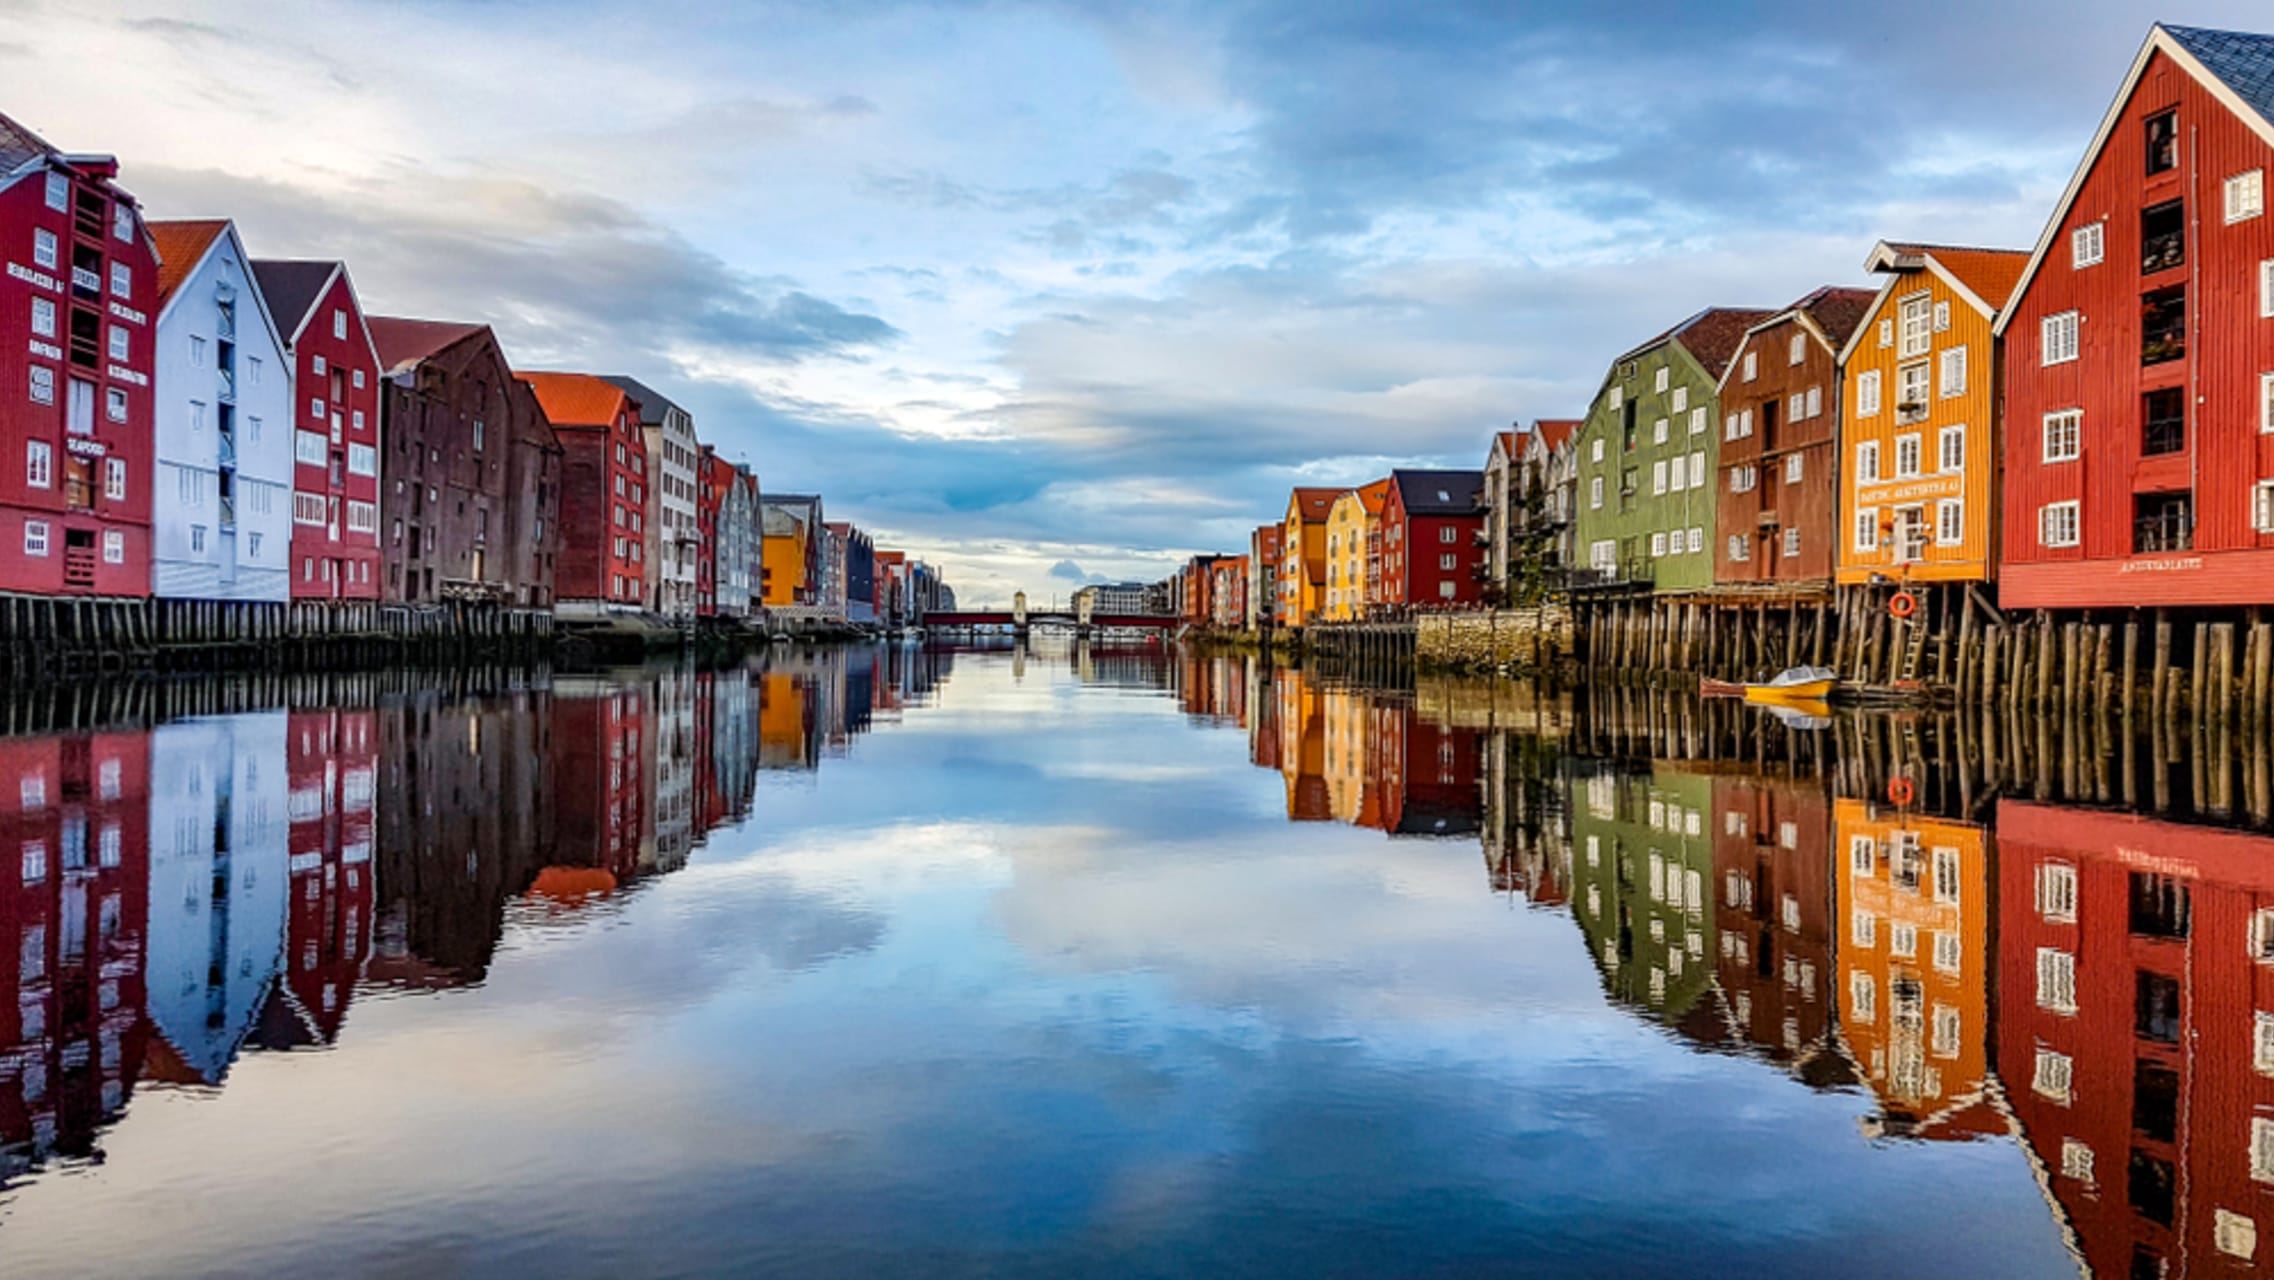 Trondheim - Trondheim: The Northernmost Cathedral in the World & the Historic Wooden District